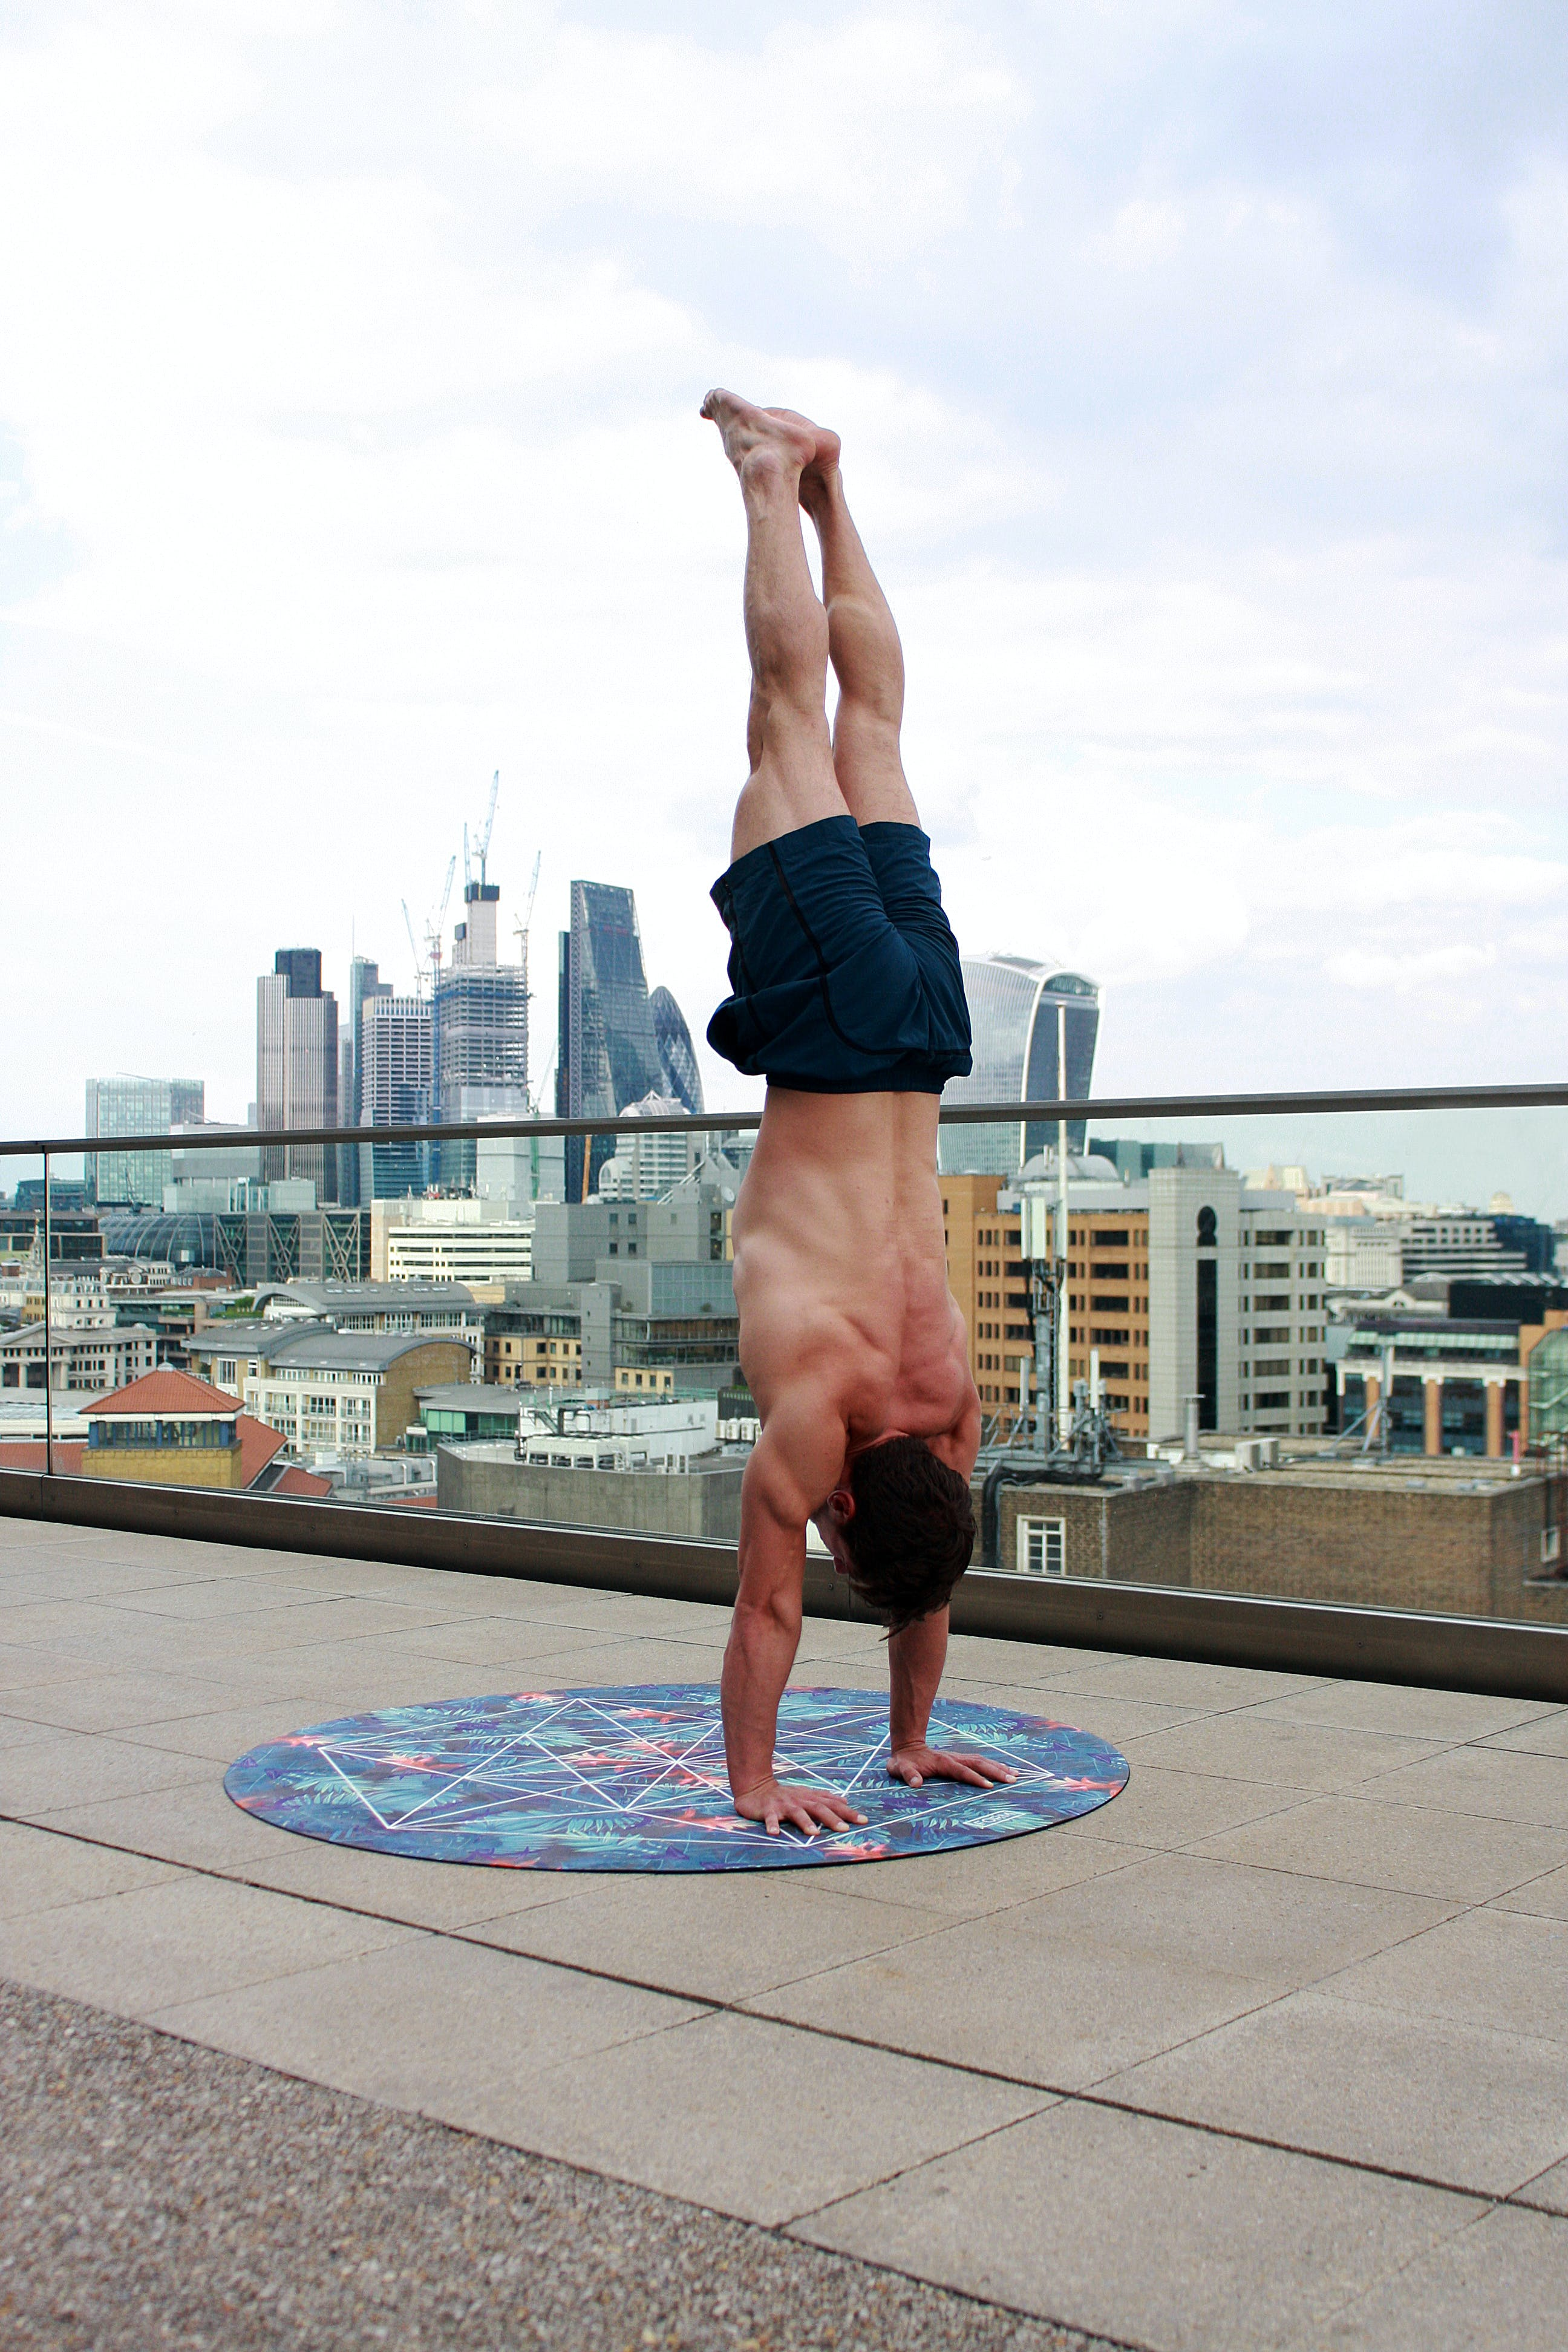 Man Wearing Black Shorts Doing Hand Stand